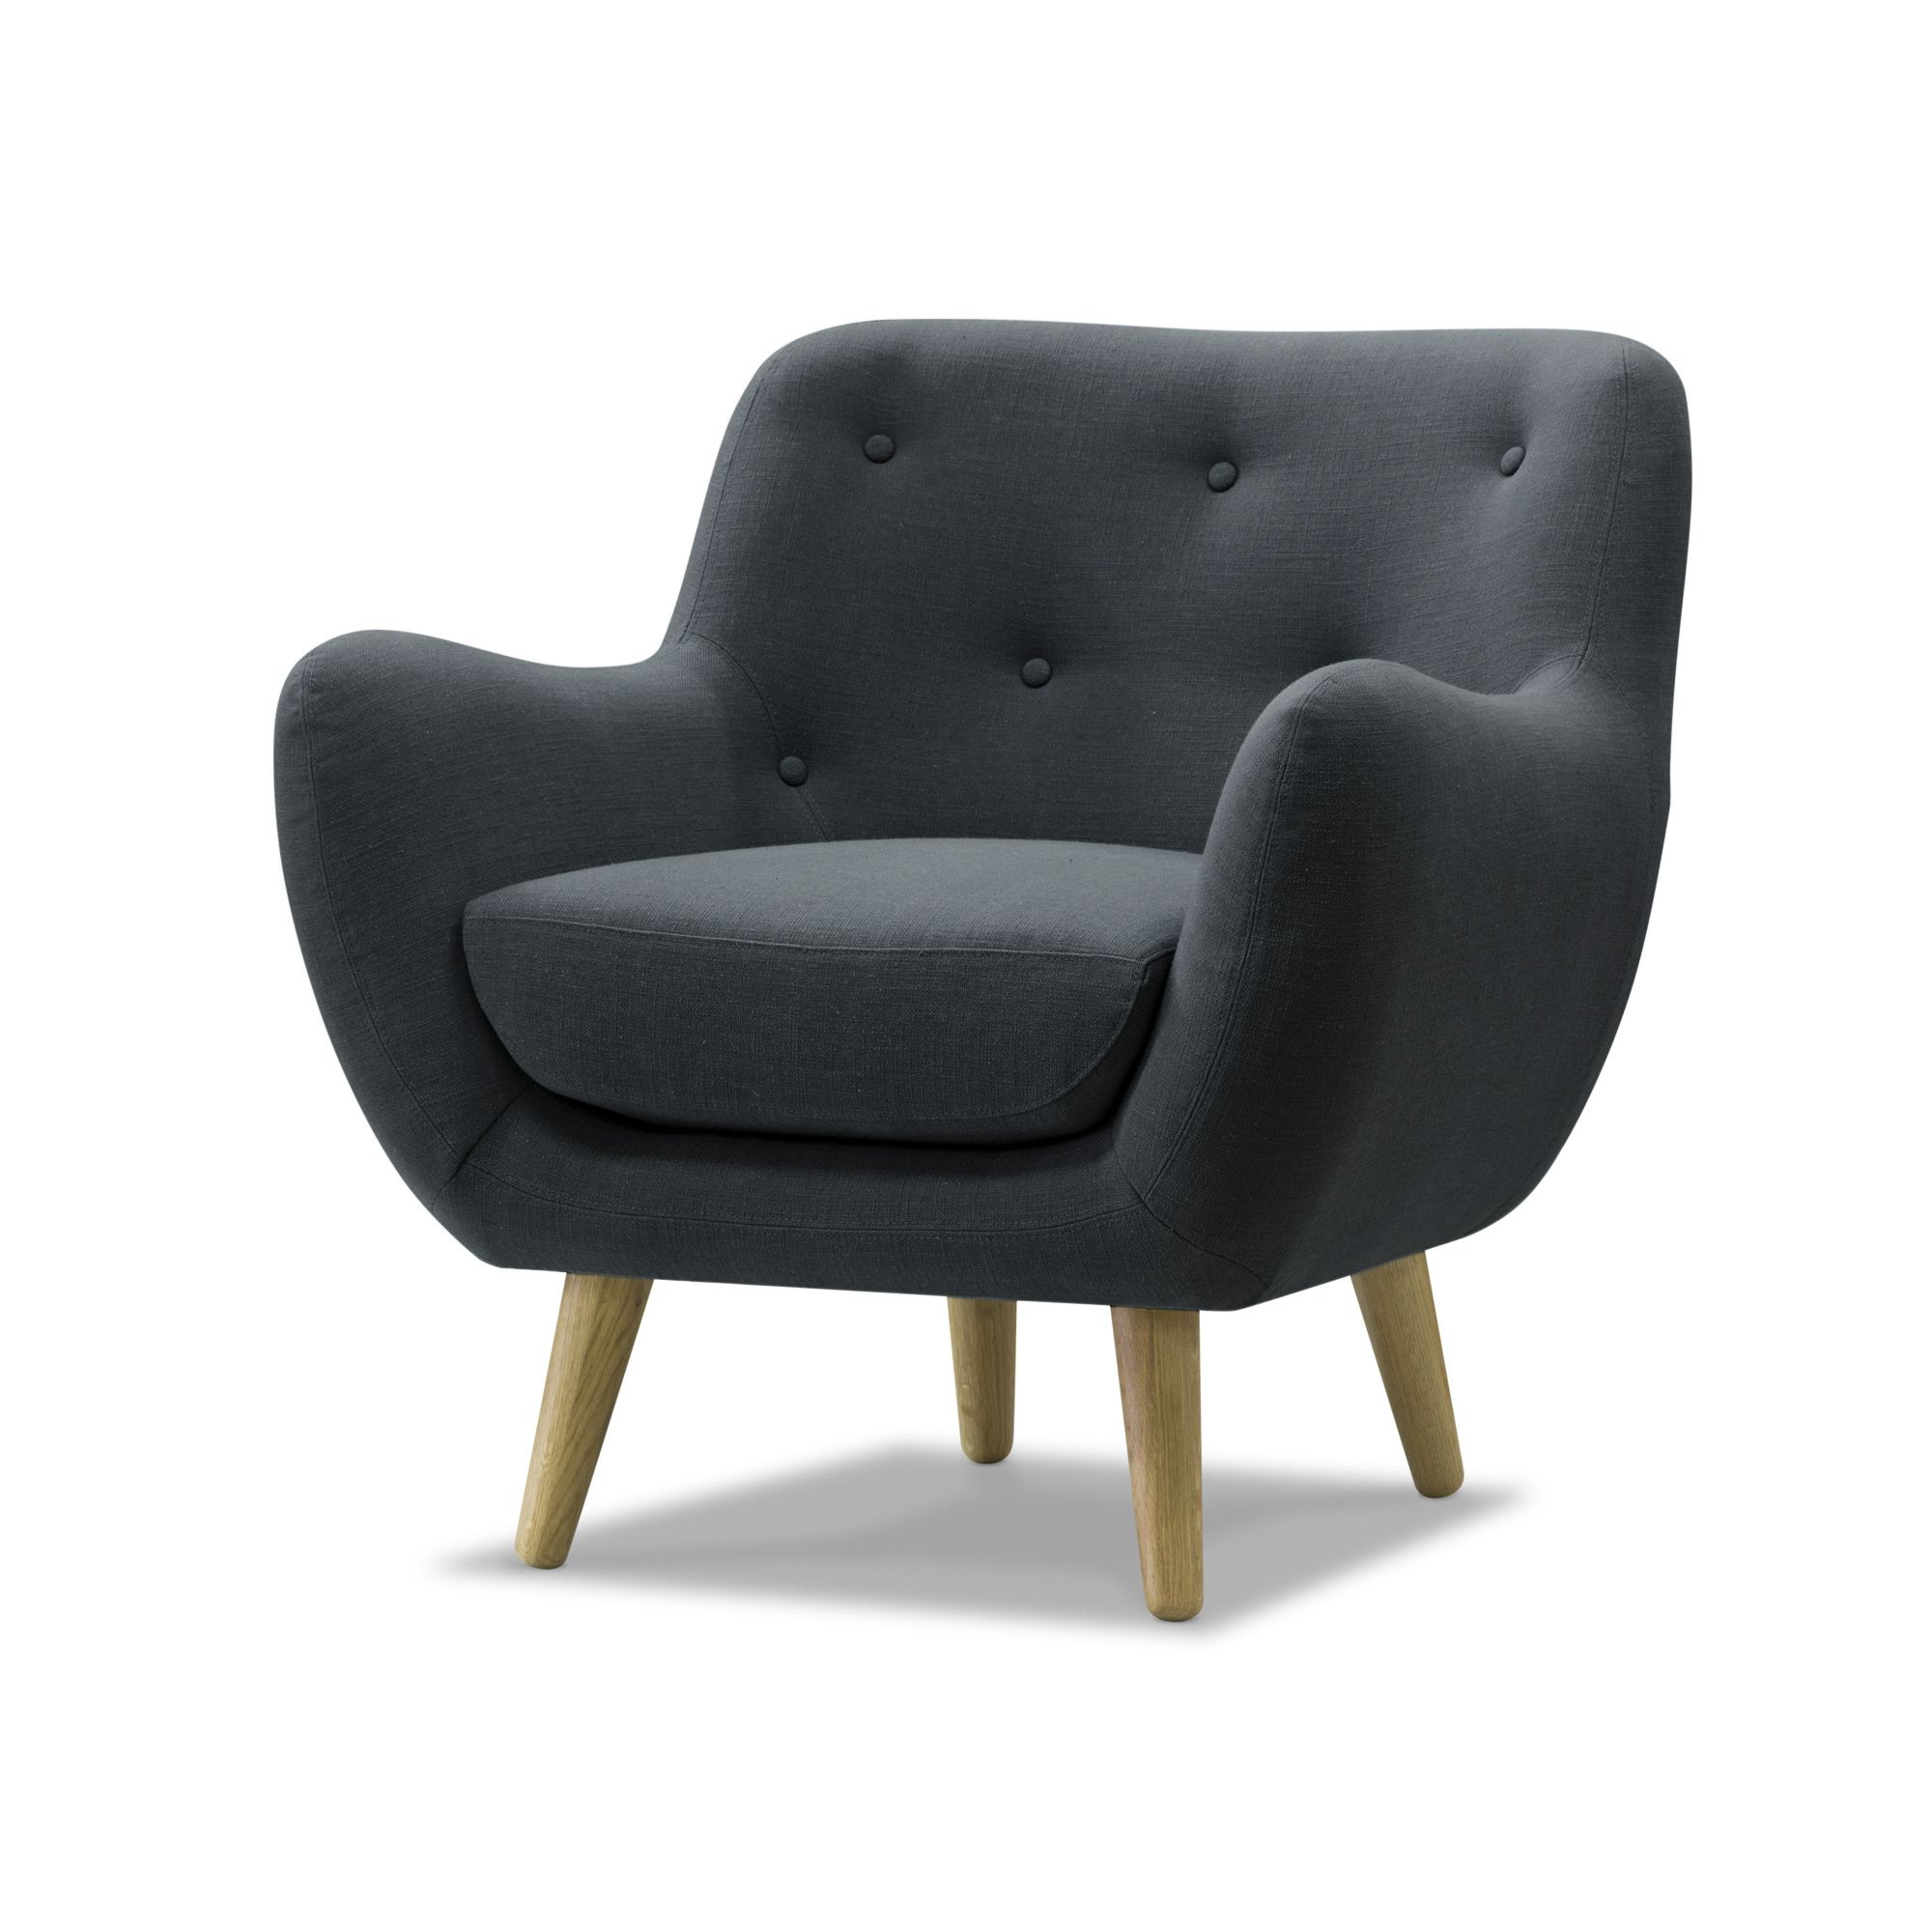 alin a poppy meuble fauteuil esprit scandinave gris pas cher achat vente fauteuils. Black Bedroom Furniture Sets. Home Design Ideas